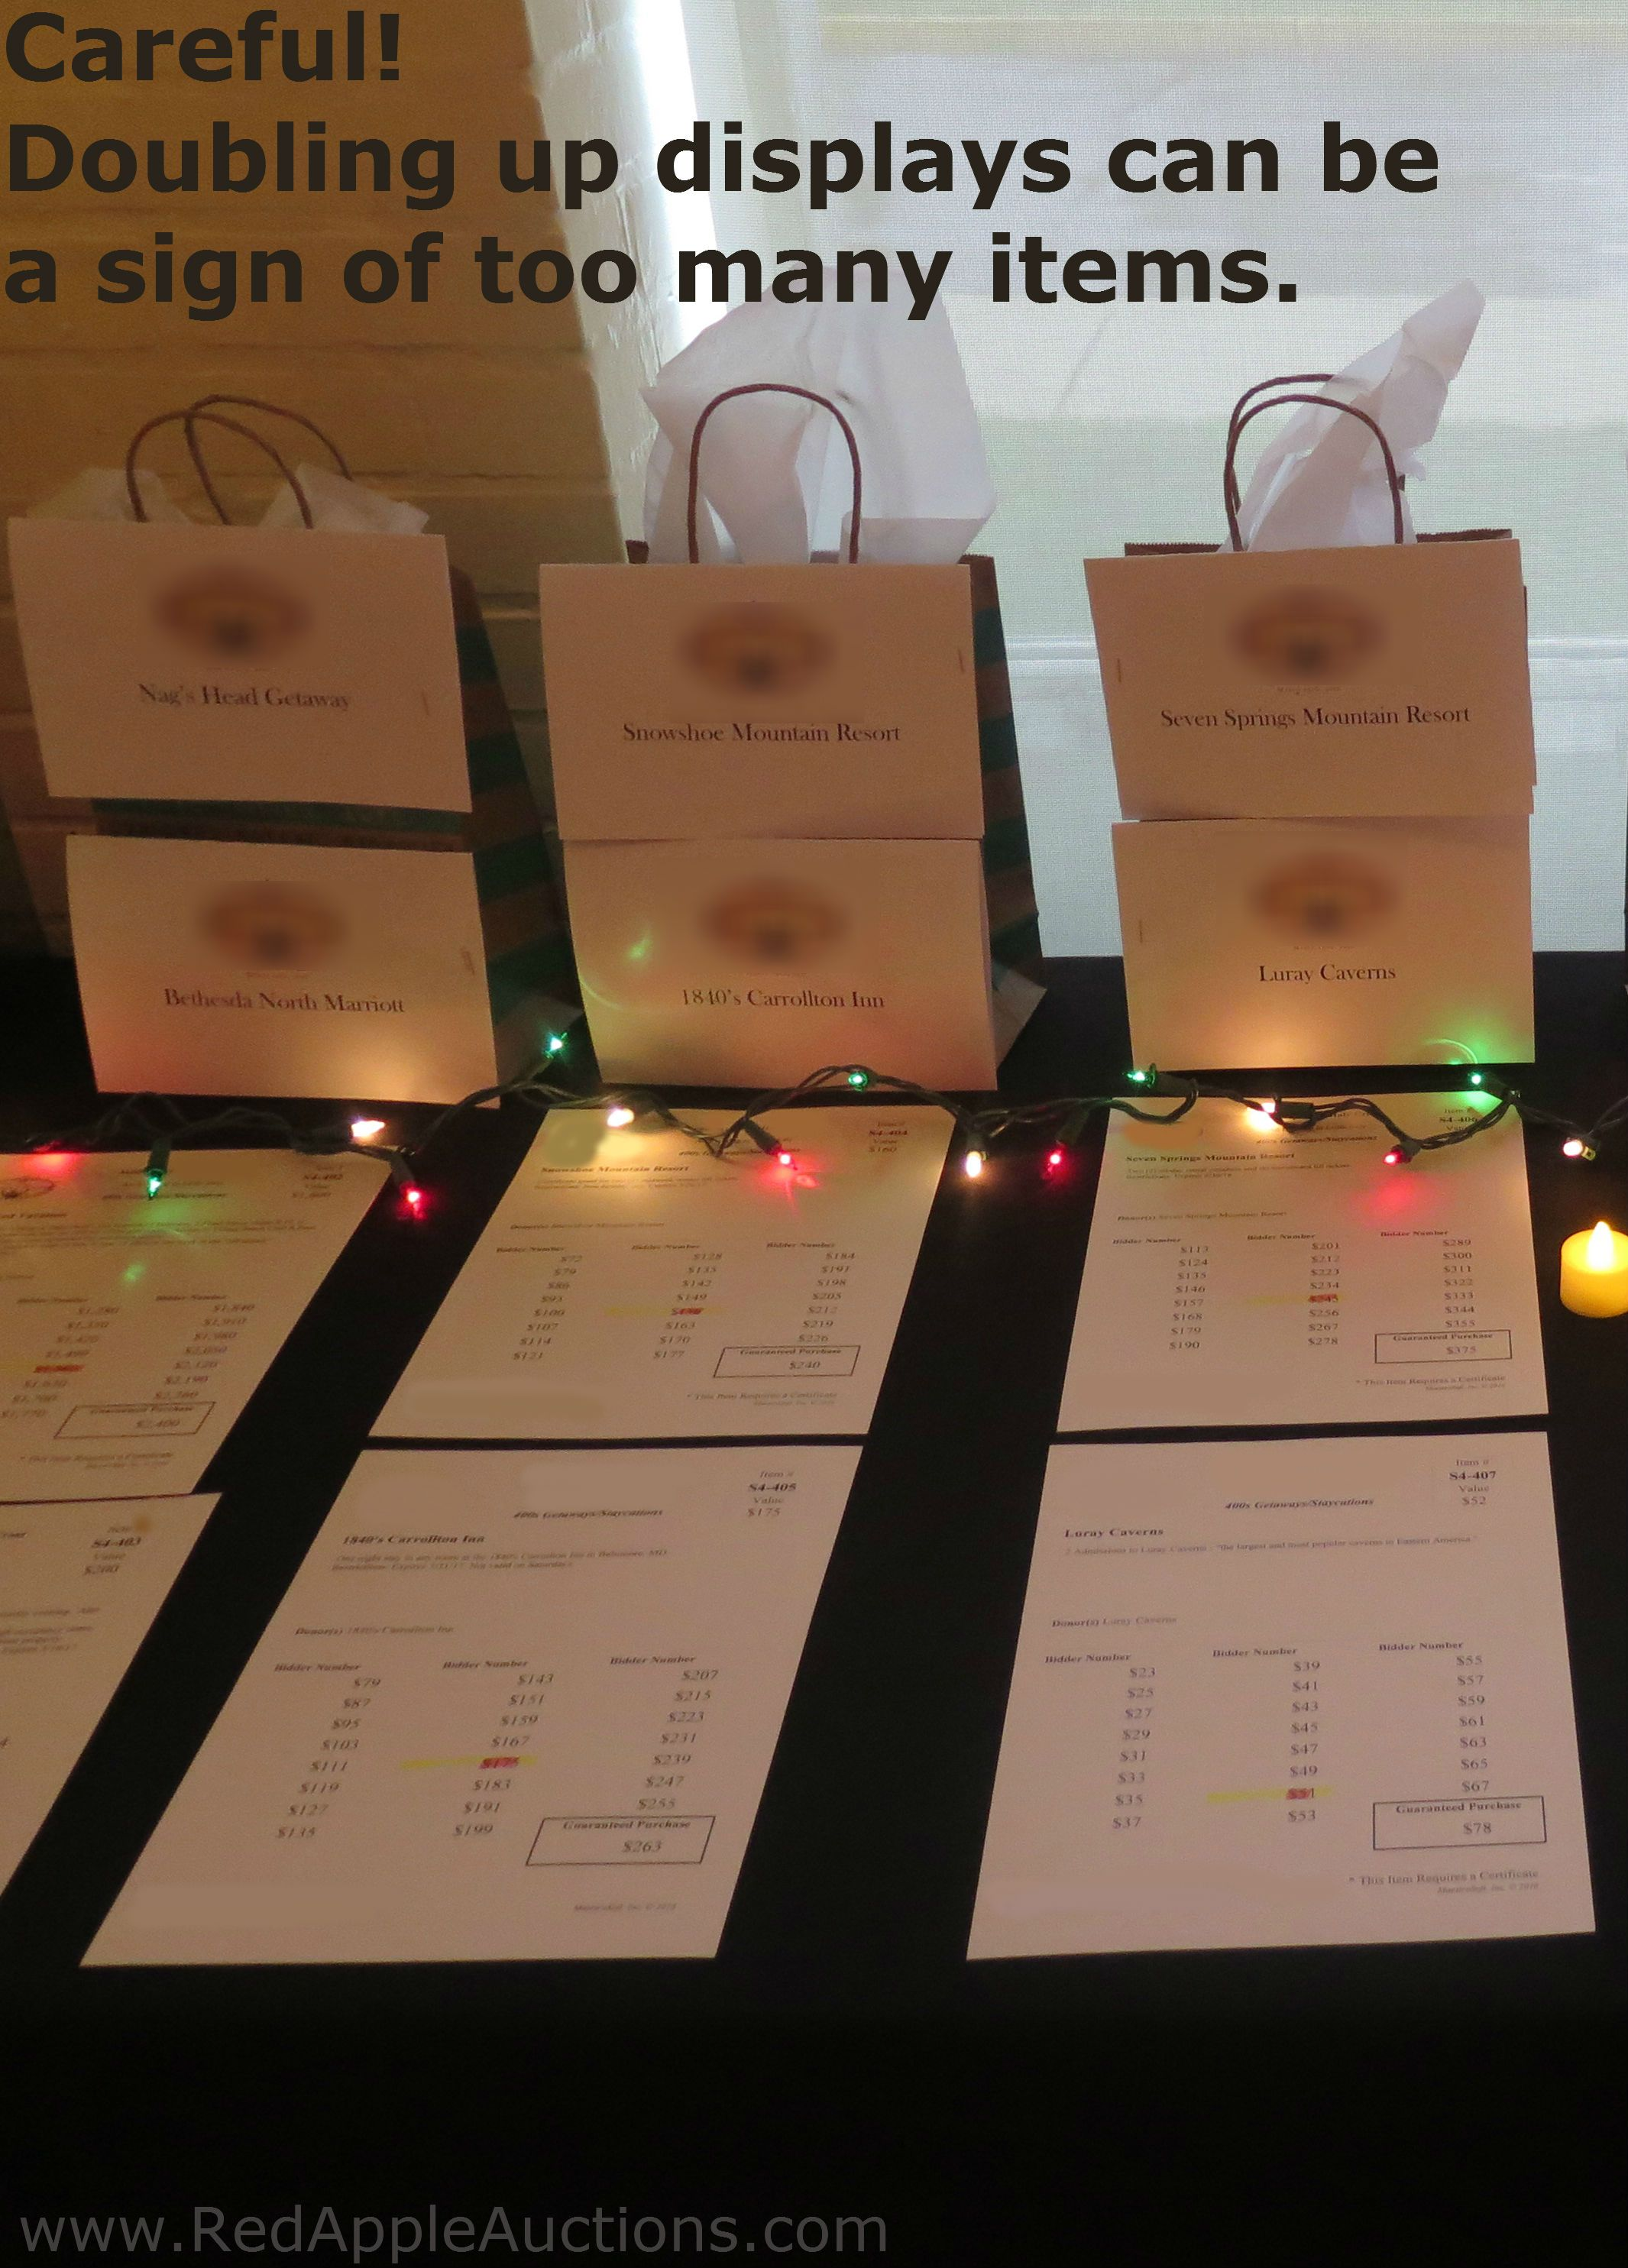 Benefit Auction Item Ideas With Images Silent Auction Display